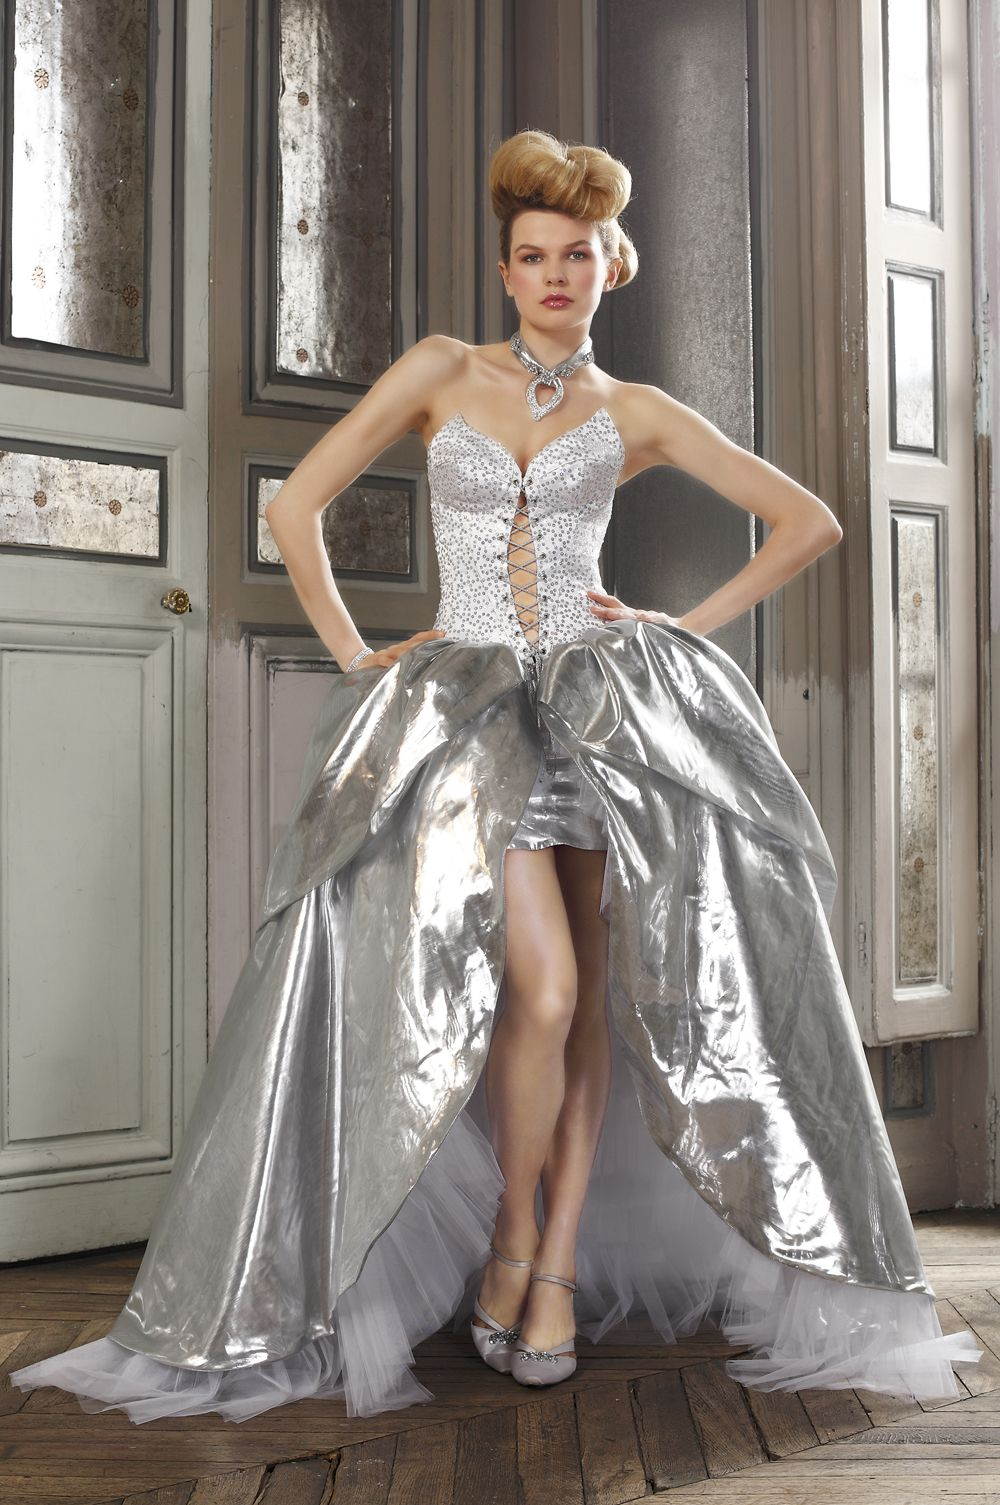 Ely-Shay-Wedding-Dress-Collections-2012-Catechu-Silver-Dress ...